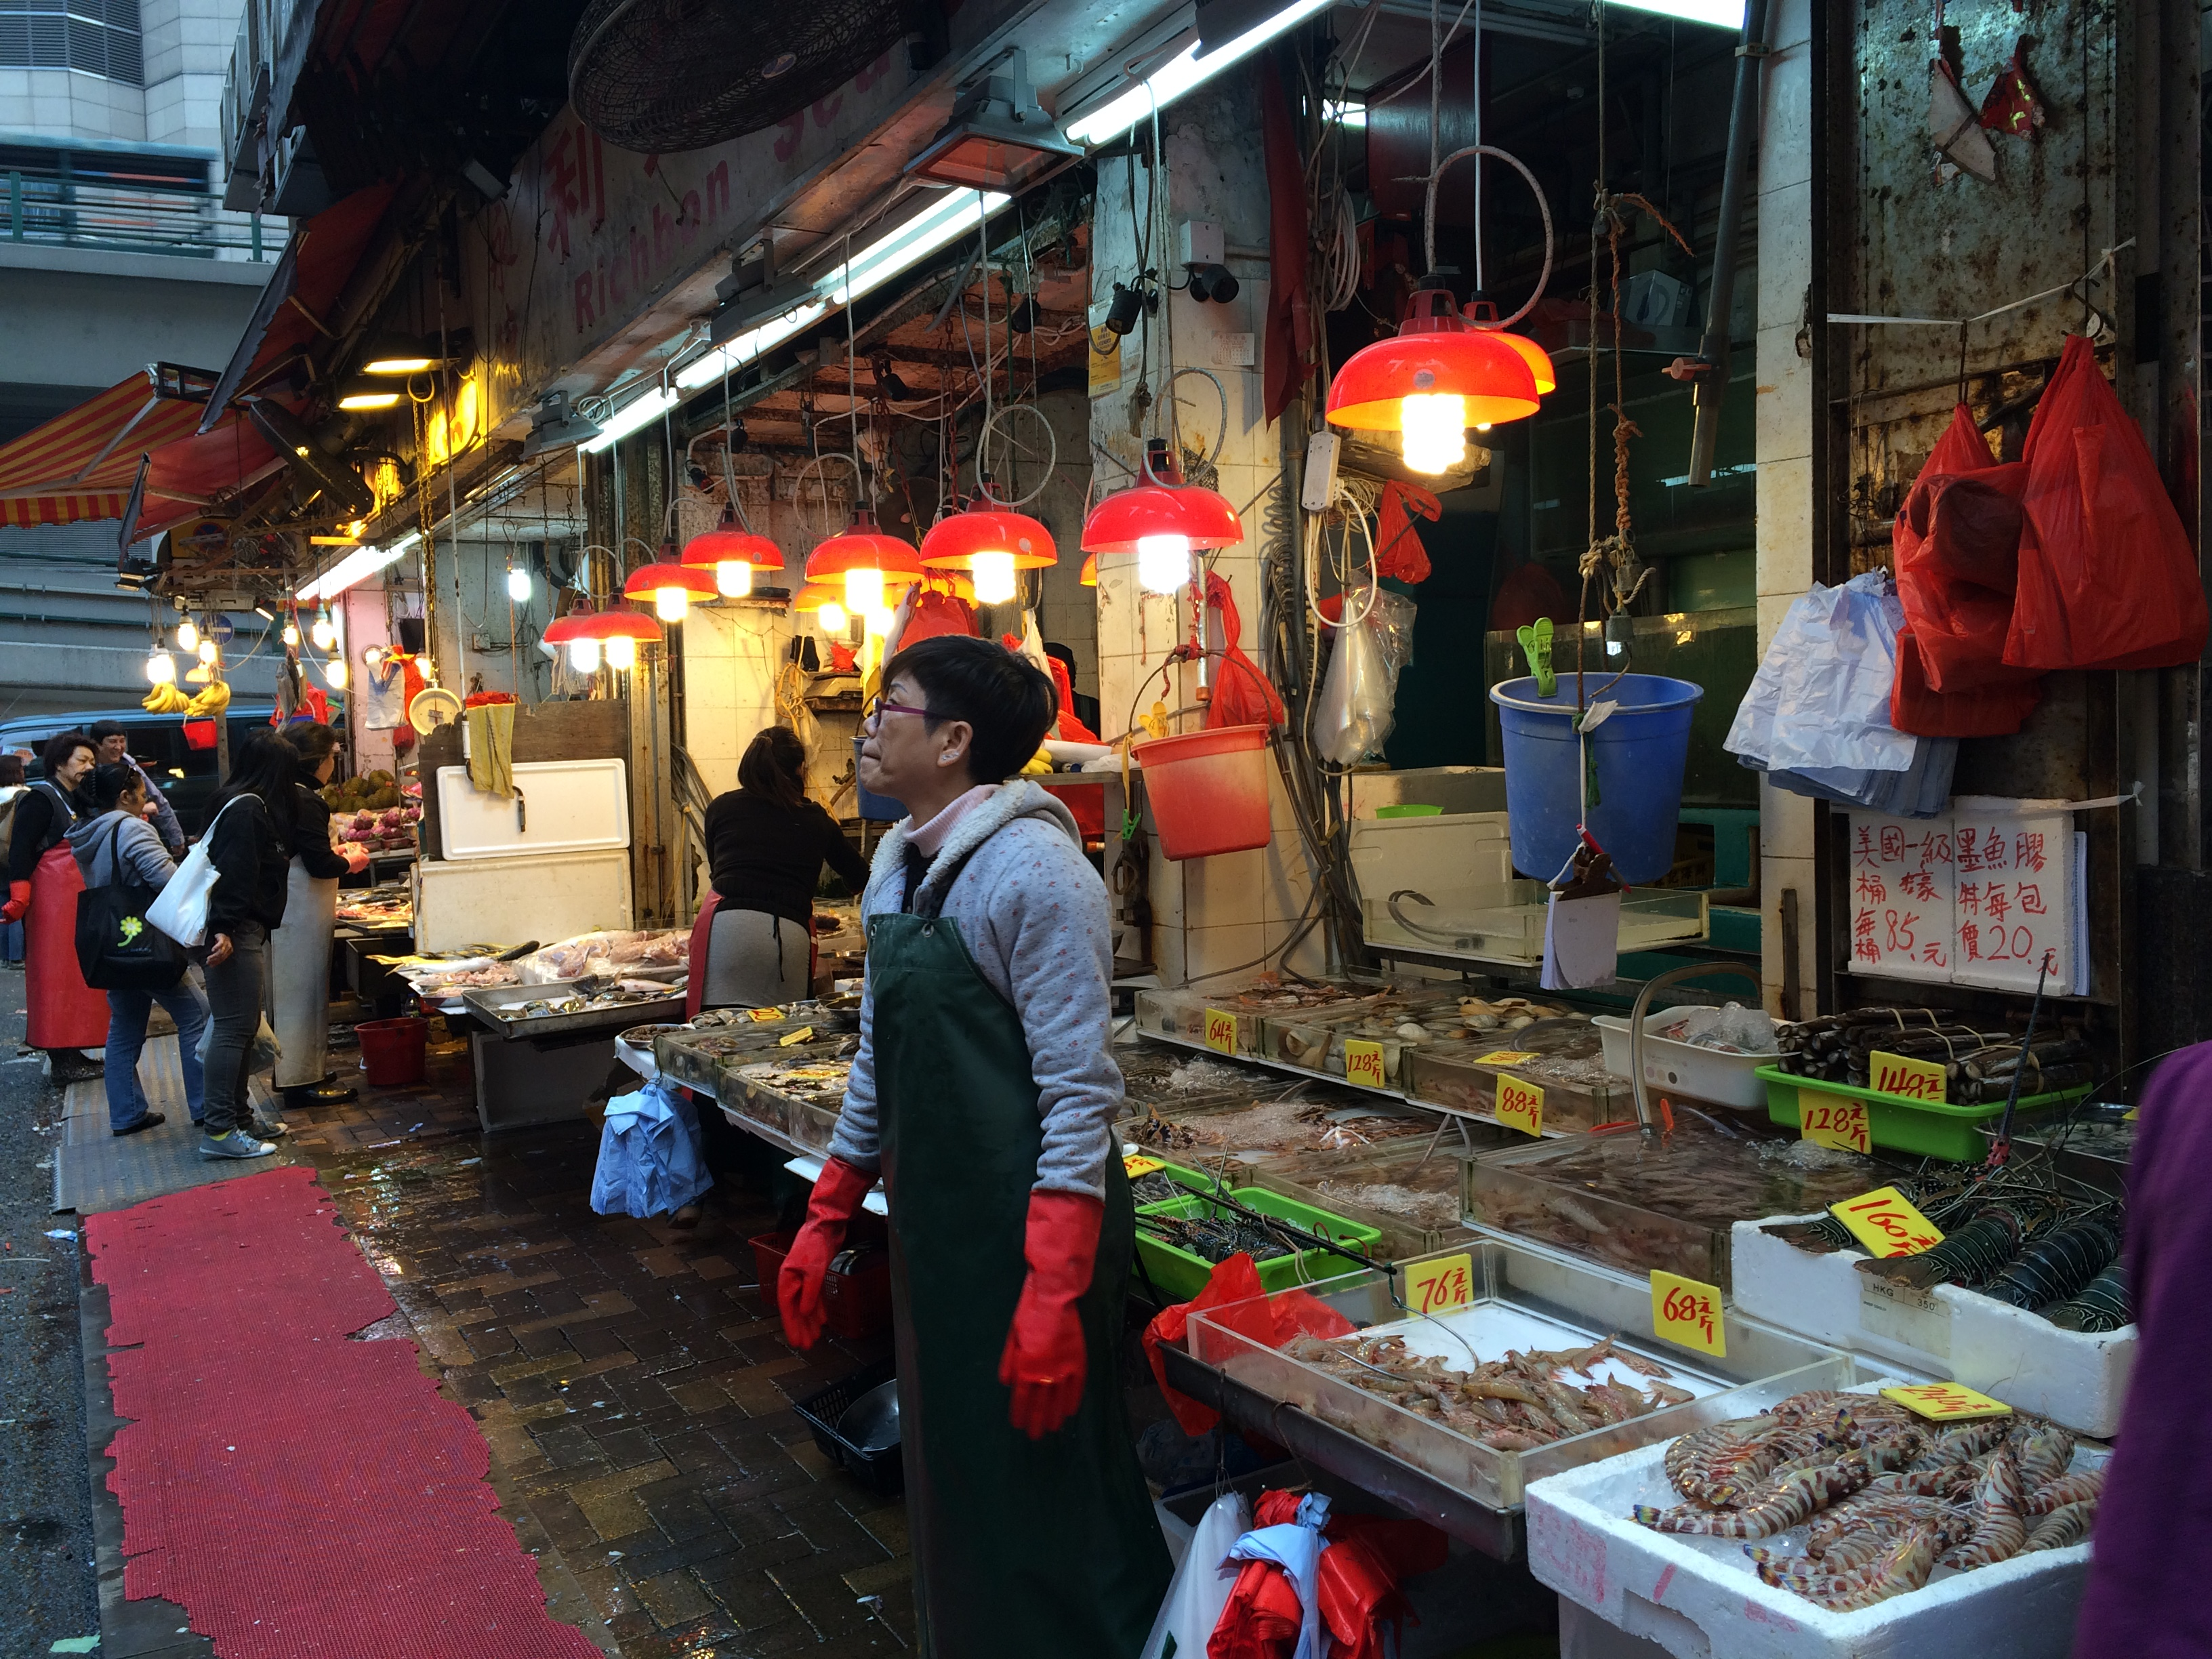 hong kong chocolate market Outlets or factory outlet stores in hong kong provide it is still an adventure or as forrest gump would put it: it's like a box of chocolate due to the fact that the stores sell off-season collections and/or sizes and color which have been hard to sell in the hong kong market.